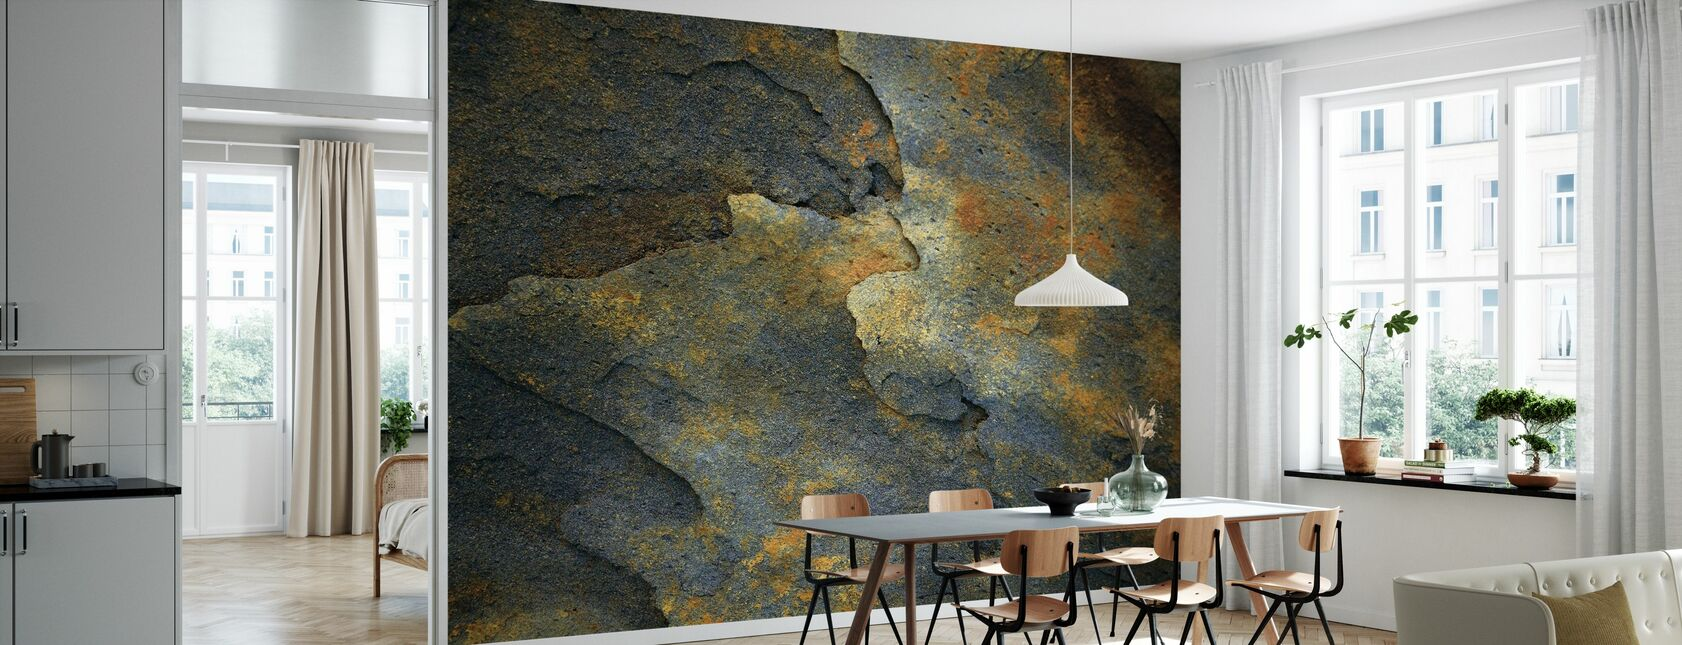 Mineral Rock - Wallpaper - Kitchen